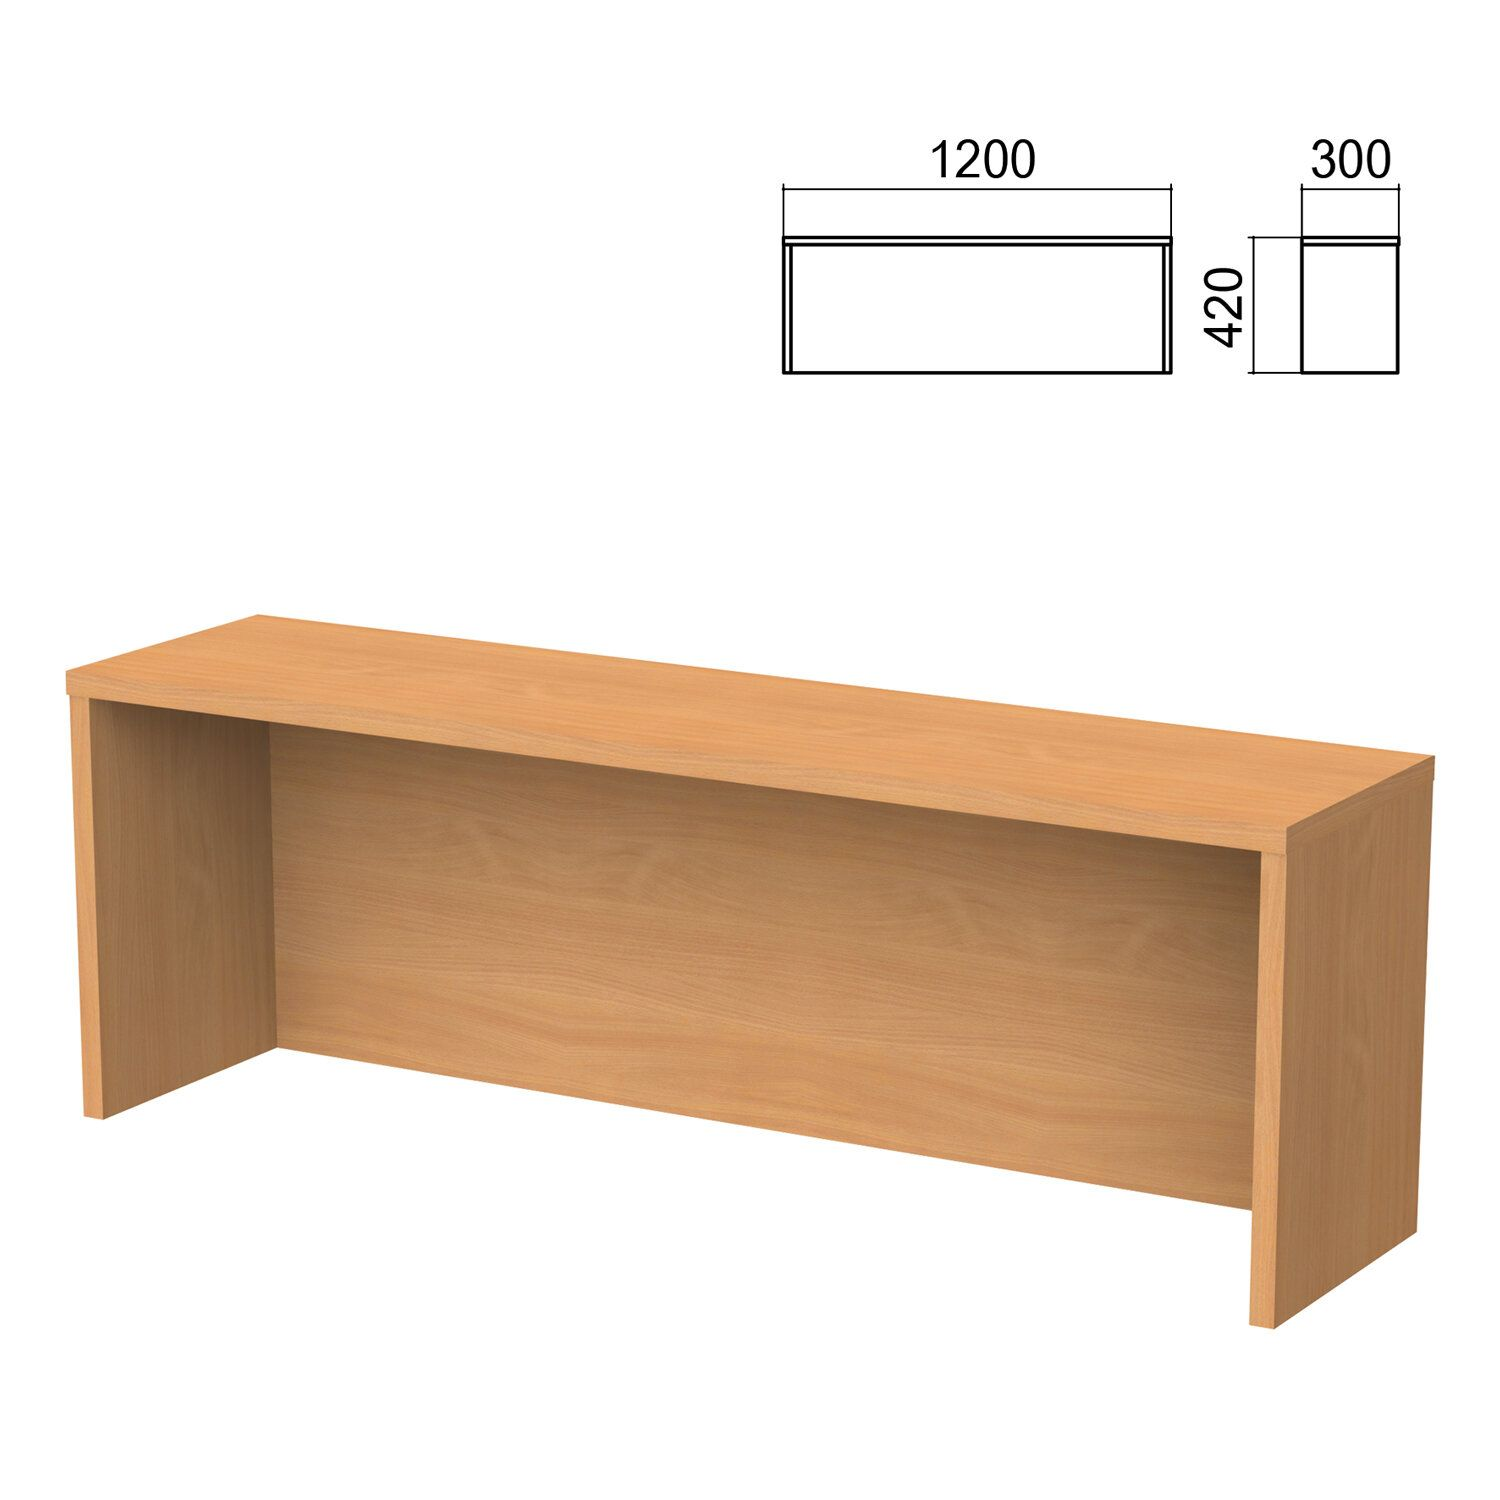 Argo table add-on, 1200 mm wide, aroso pear